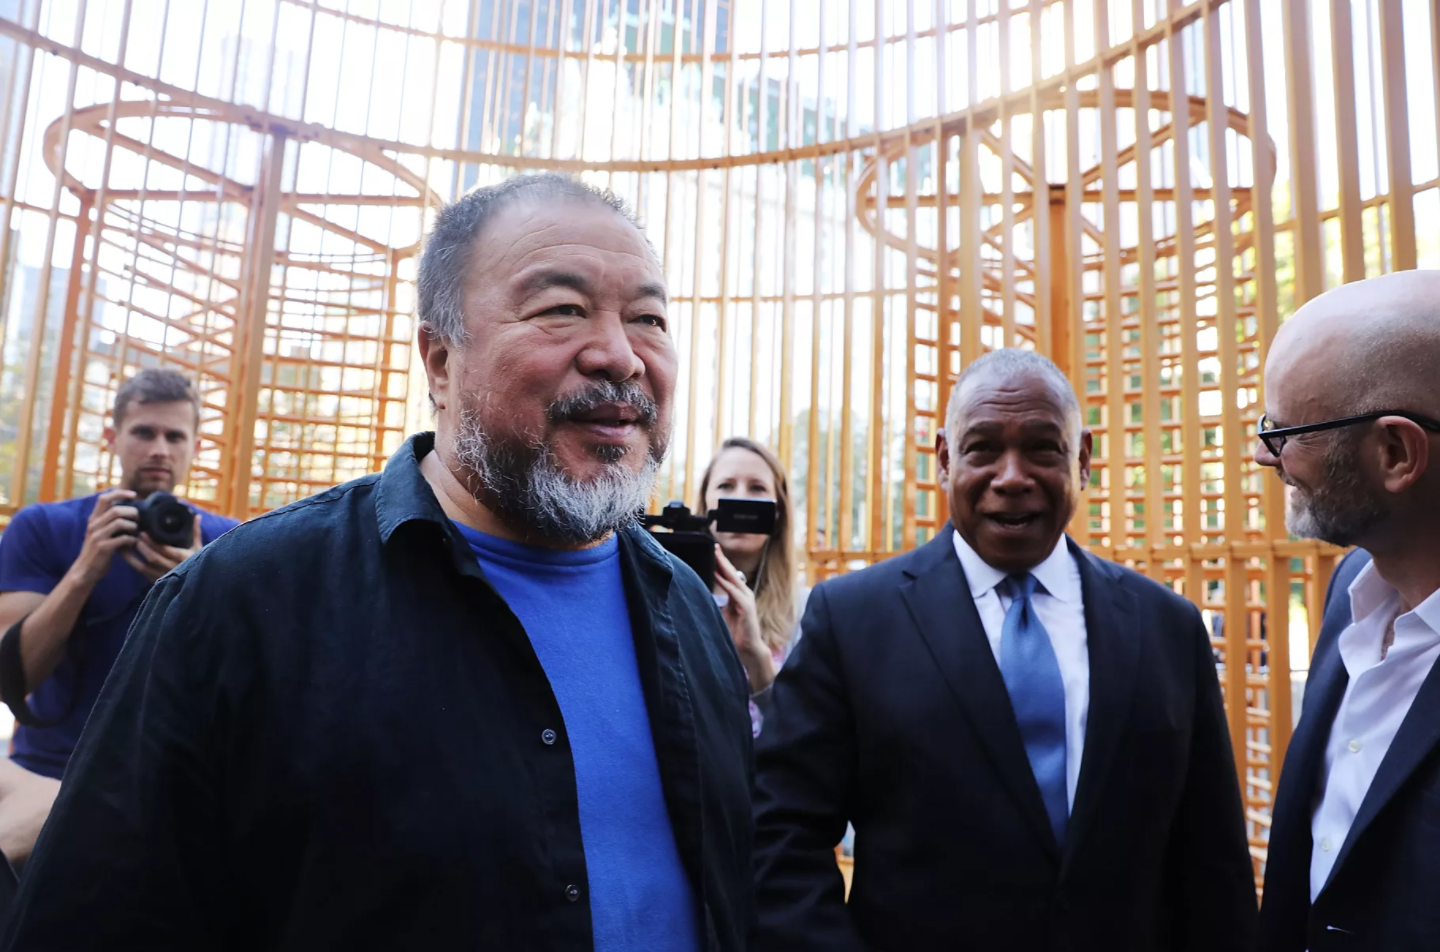 Vox.com  | Artist and activist Ai Weiwei on exploring the absurdity of national borders   I spoke to artist and filmmaker Ai Weiwei about Chinese politics, the global refugee crisis, and what it means to be a multidisciplinary artist.   Read more.